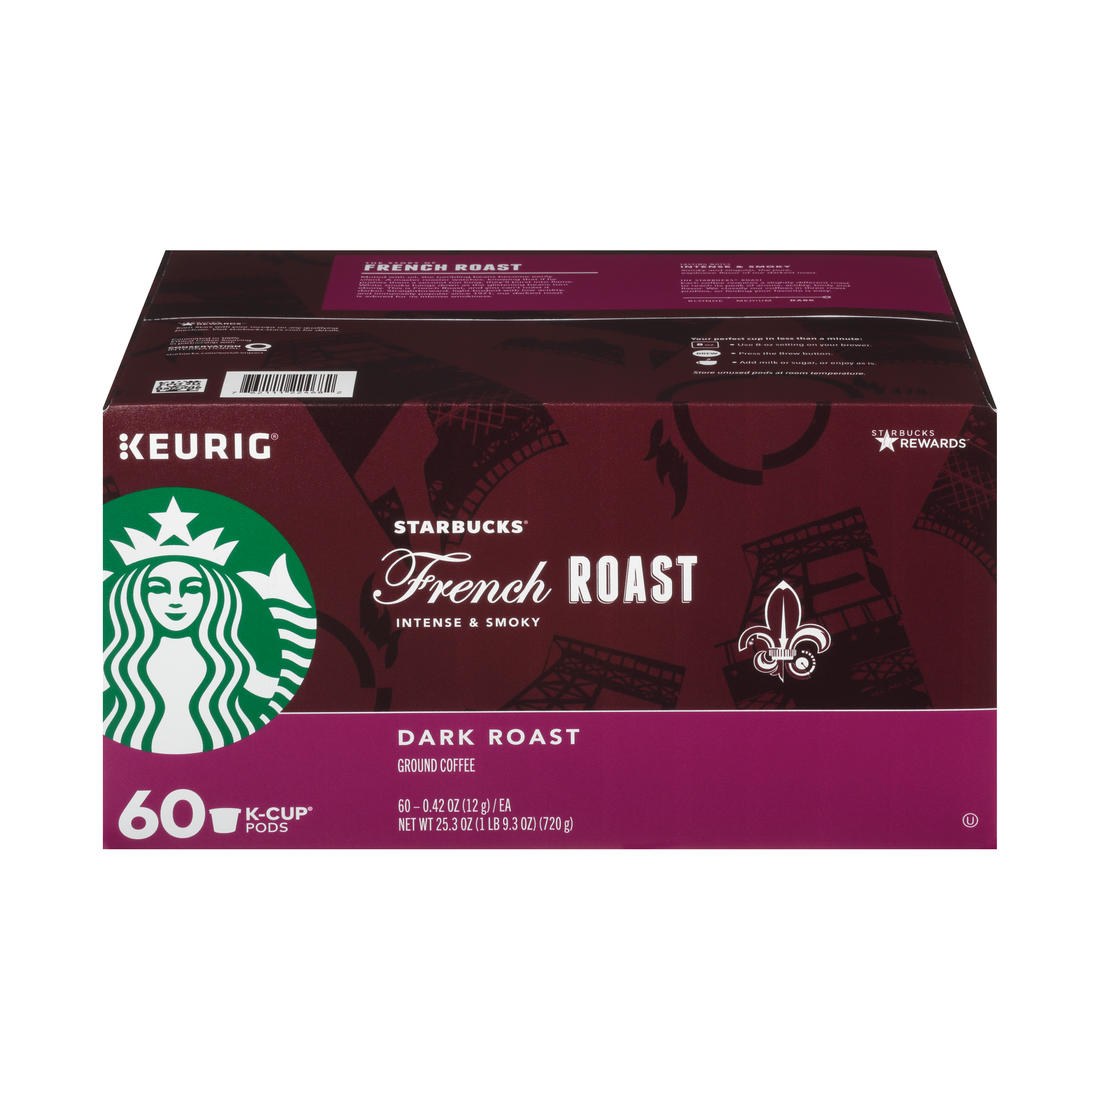 picture about Starbucks K Cups Printable Coupons called Starbucks French Roast K-Cup Pods, 60 ct.